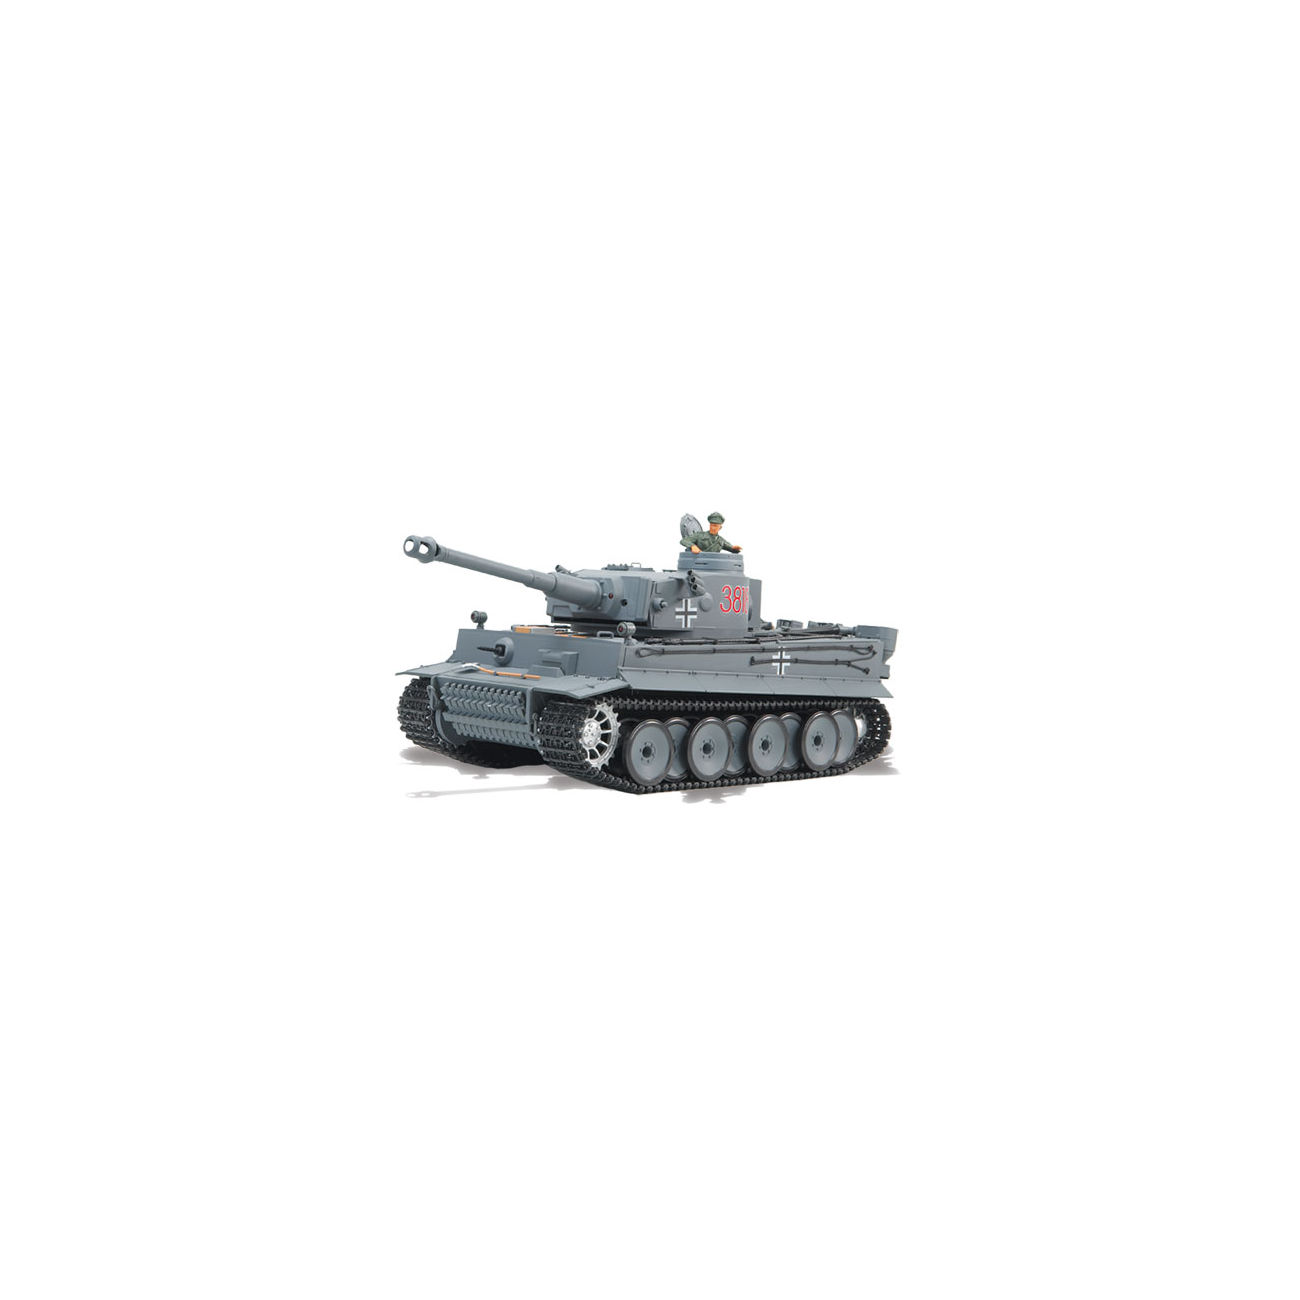 rc panzer tiger i mit rauch sound 1 16 schussf hig rtr. Black Bedroom Furniture Sets. Home Design Ideas